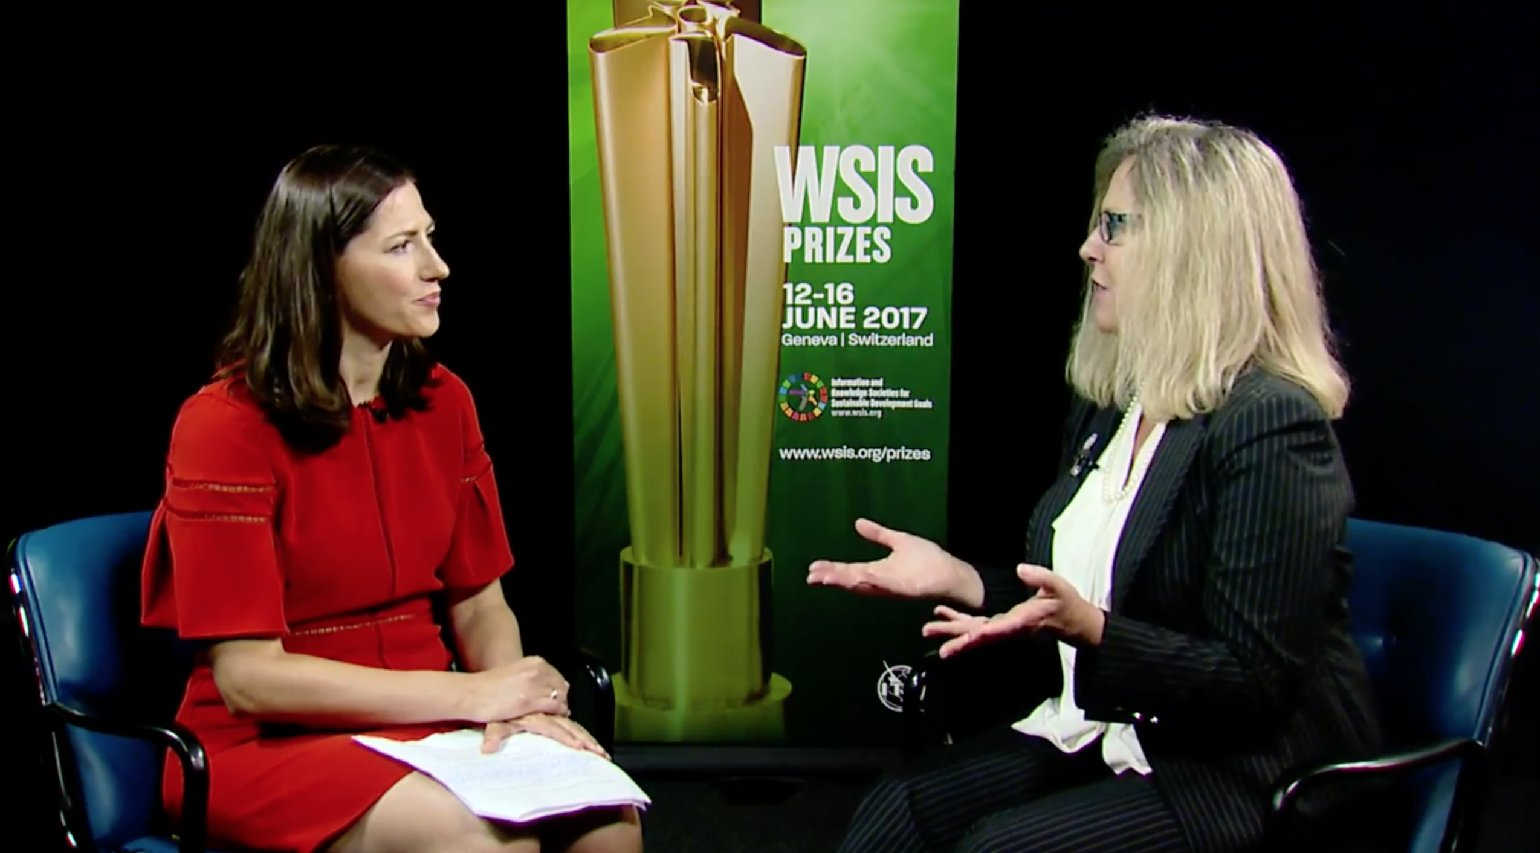 Karen Bartleson interviewed at World Summit on the Information Society